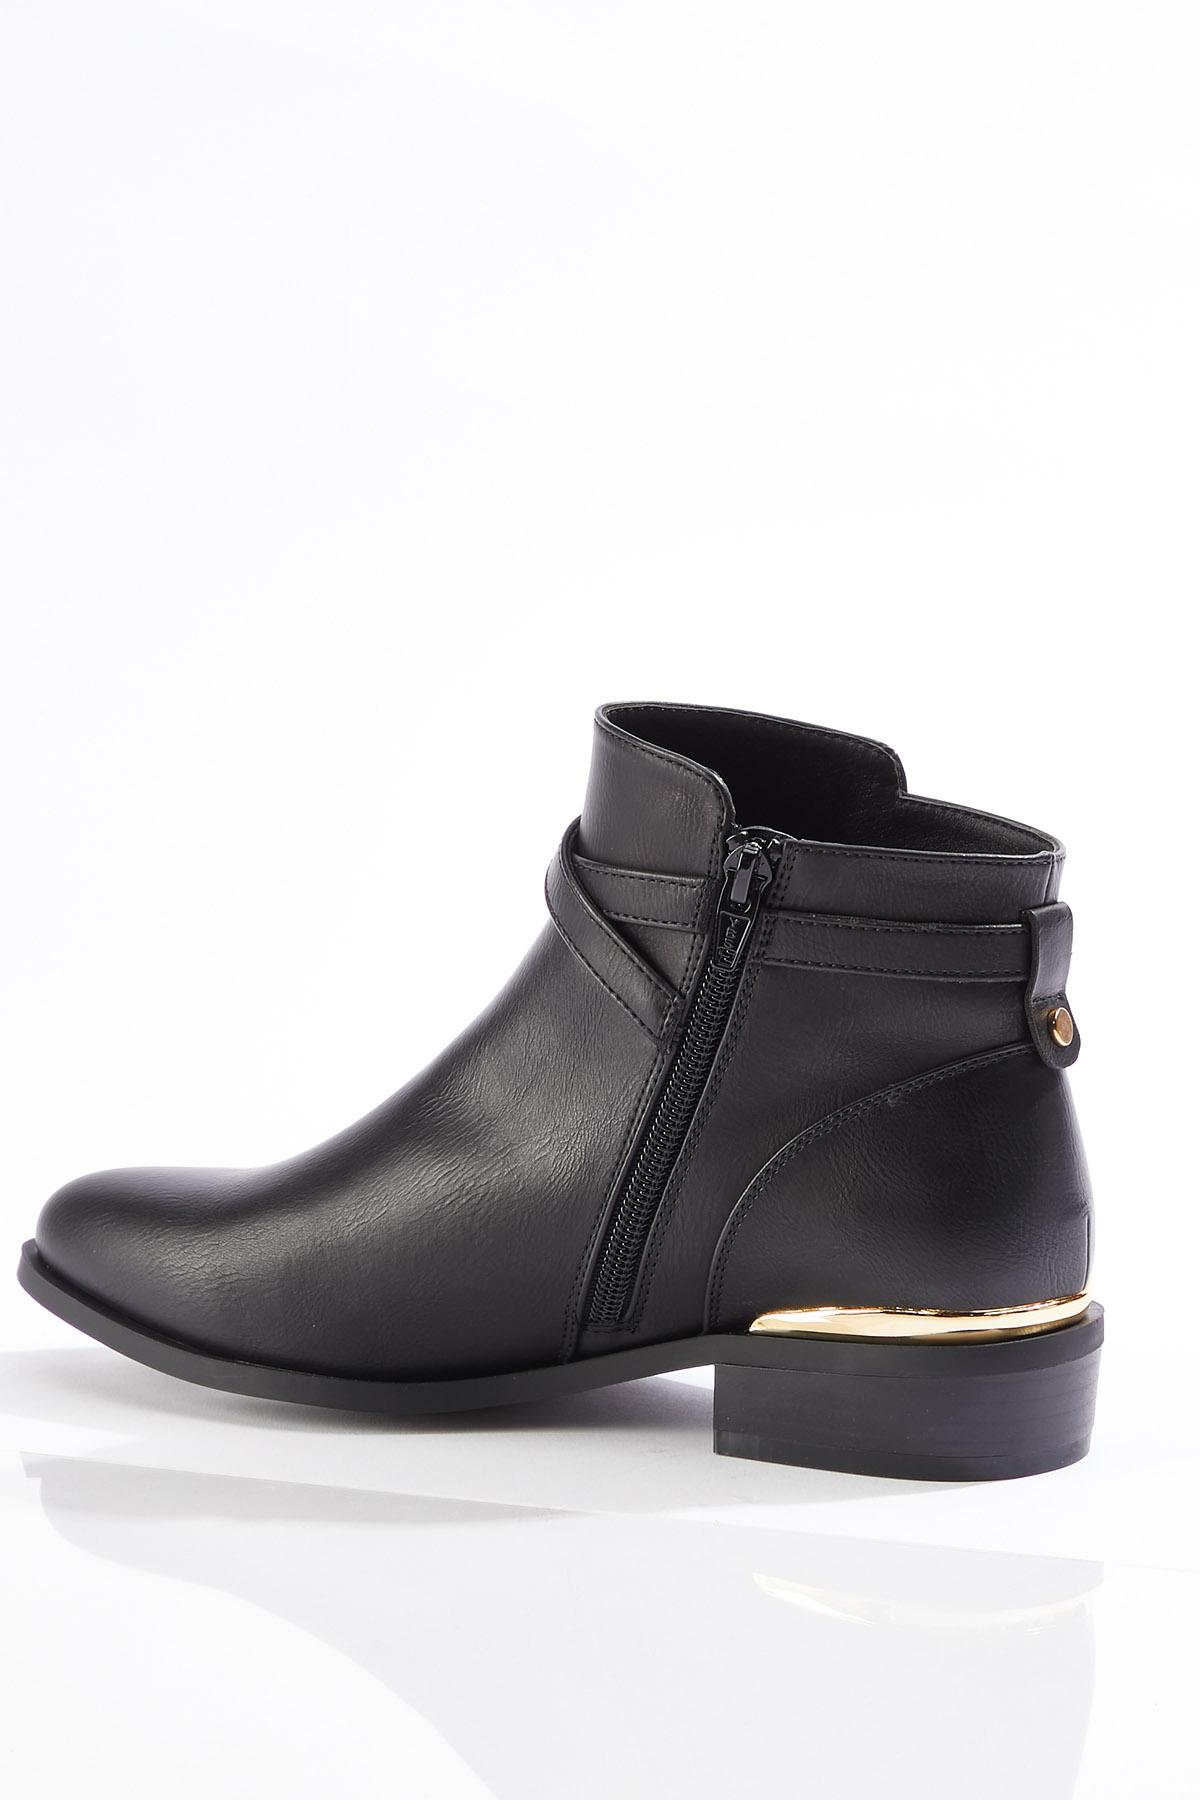 Wide Width Strappy Buckle Booties (Item #44749966)